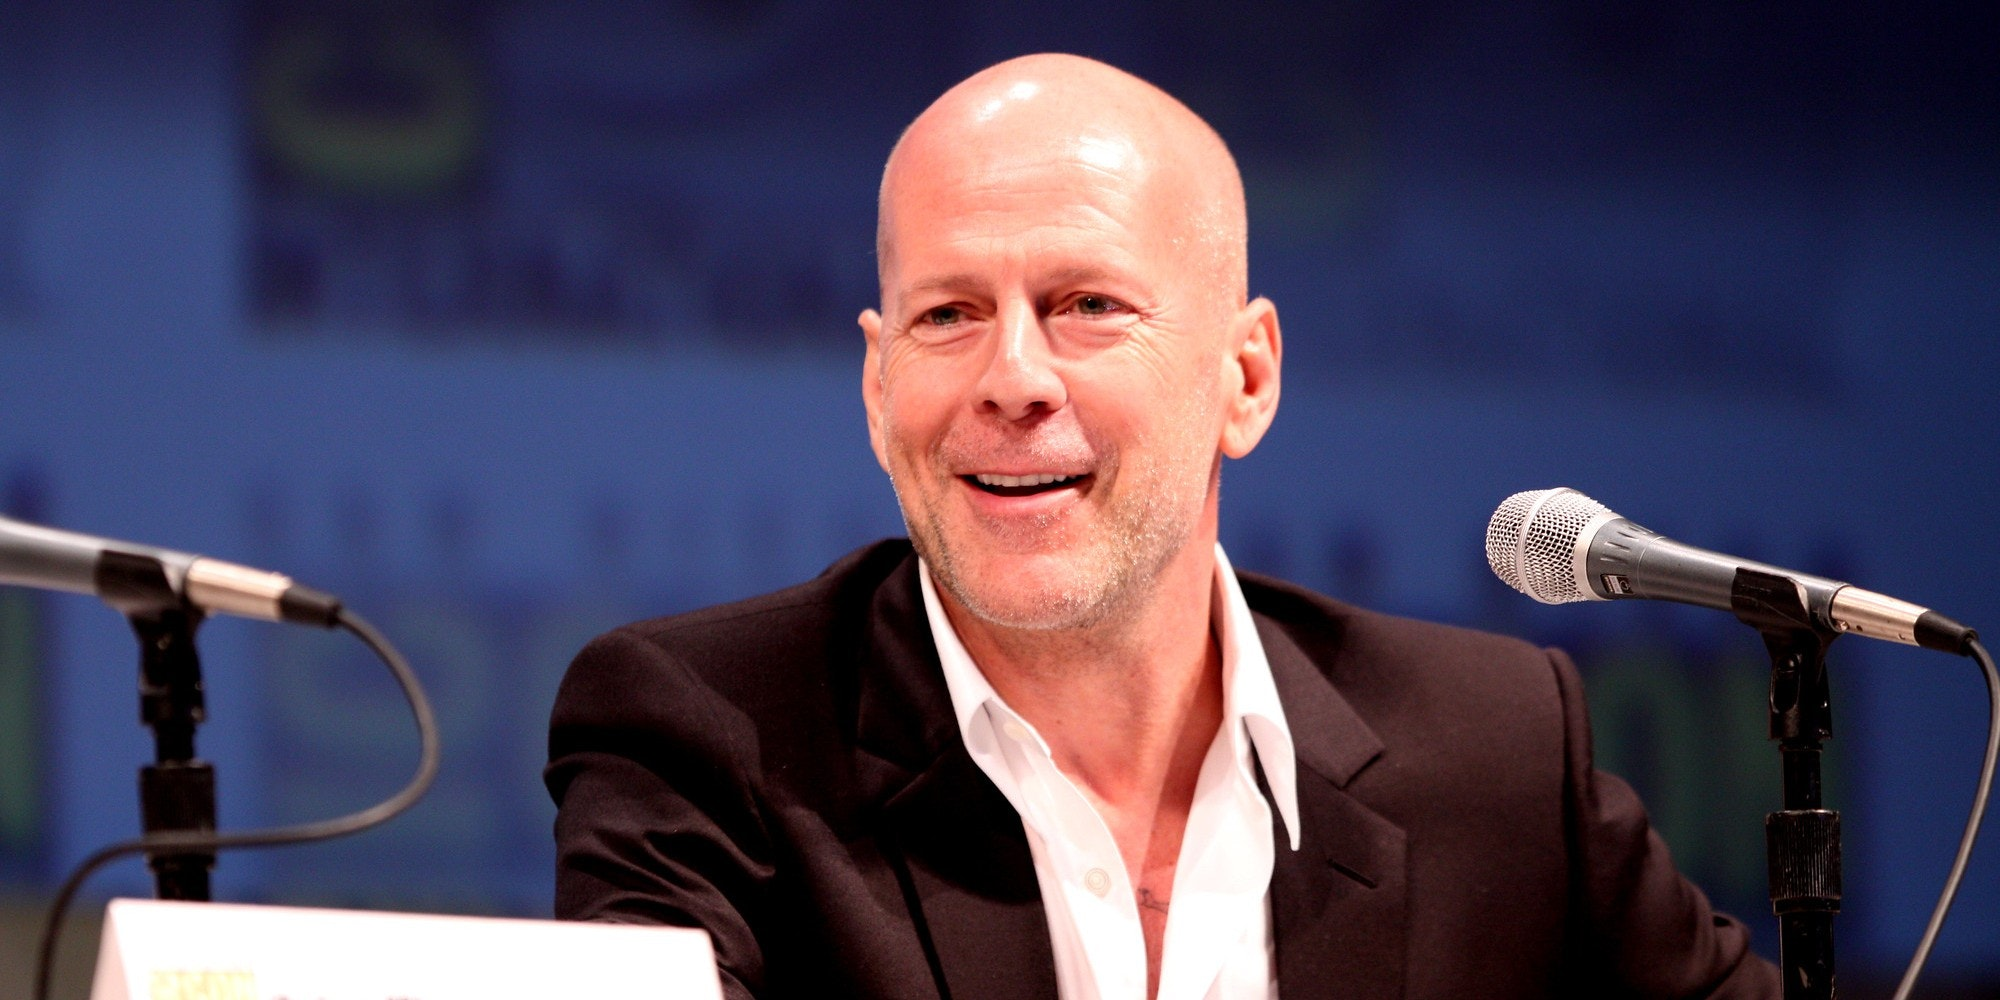 Hollywood actor Bruce Willis